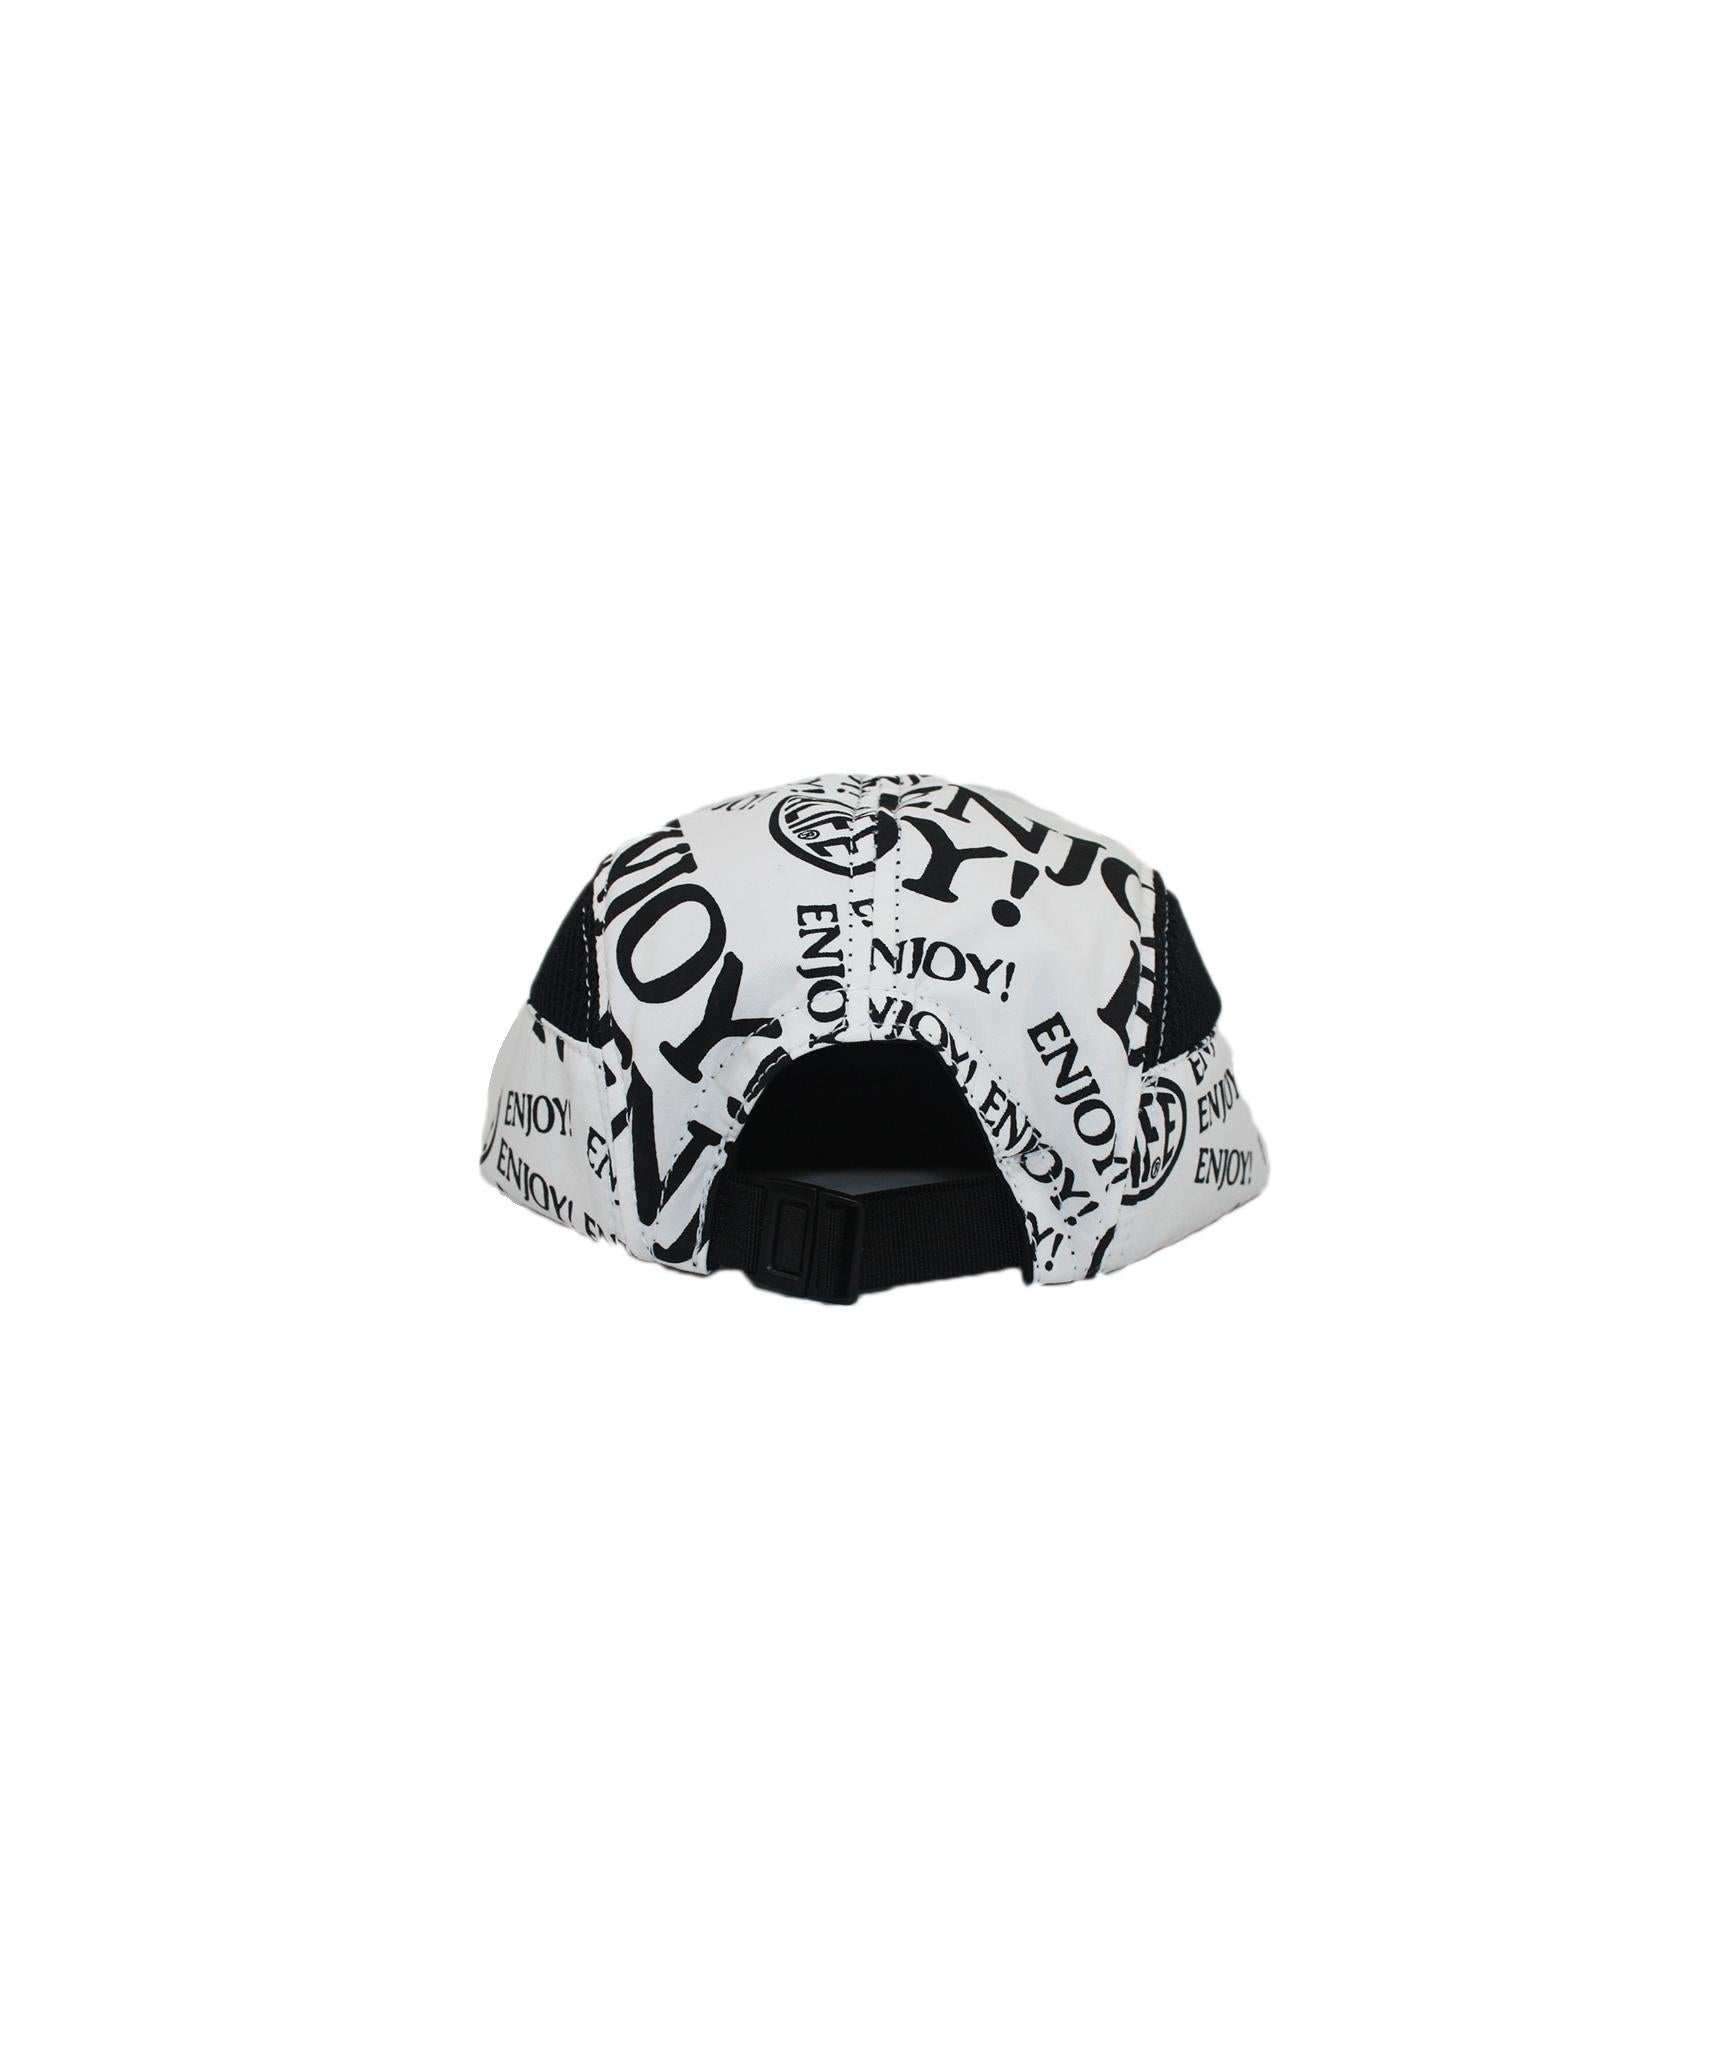 Alife Upcycle Hat - Enjoy! Capsule - White/Black